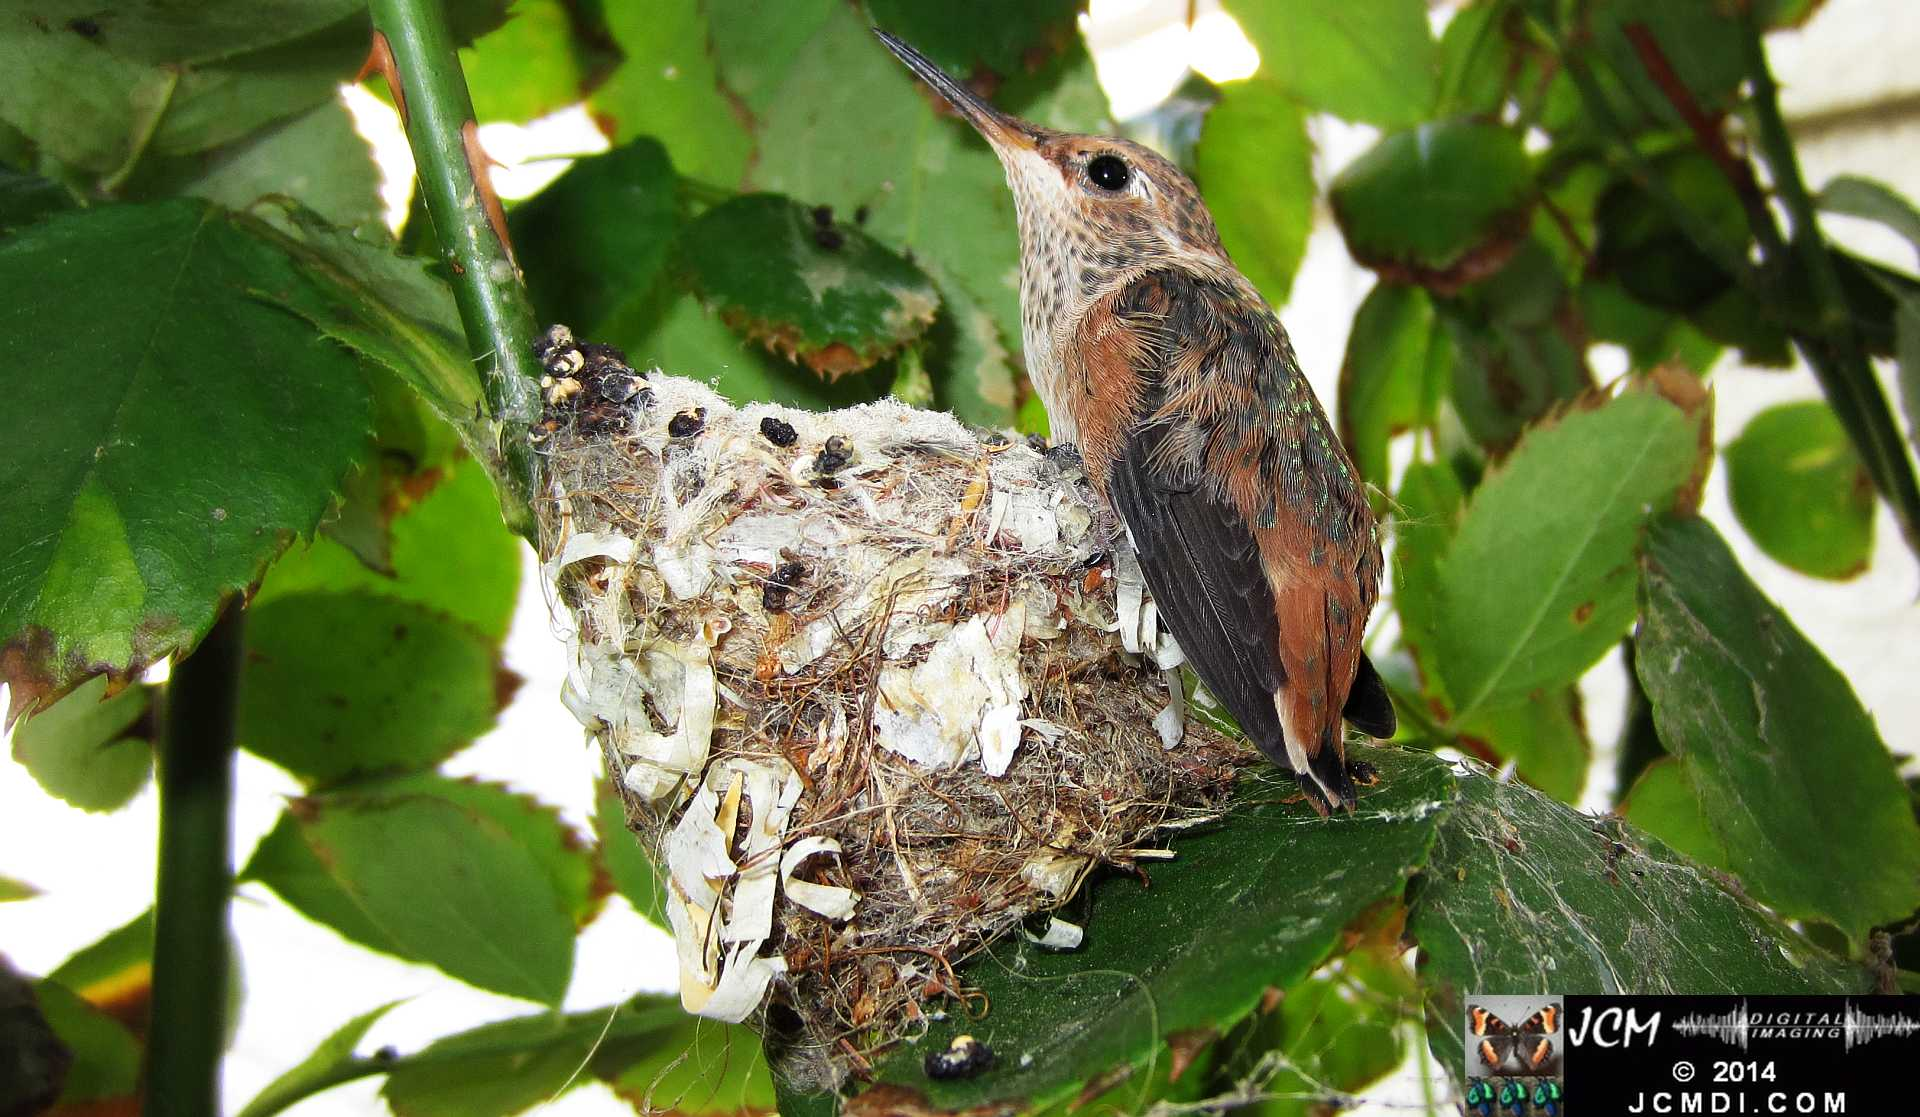 Allens Hummingbird chick and nest image 3-28-2014